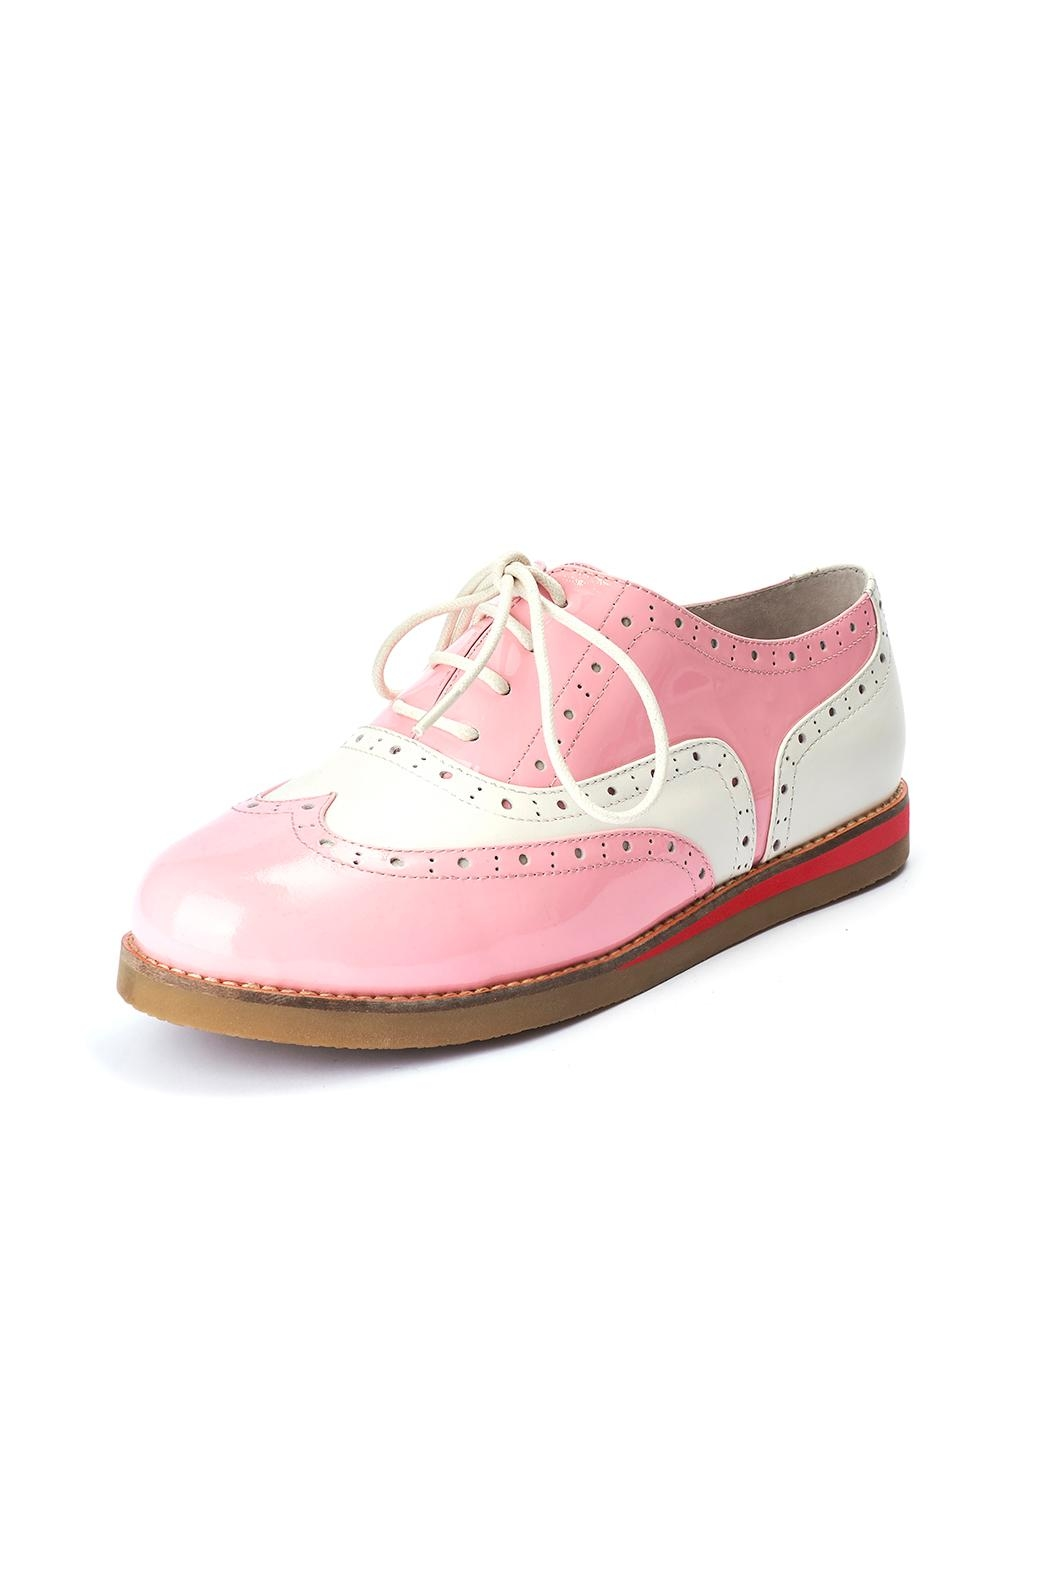 Lola Ramona Cecilia Wingtip Candy Shoes - Front Cropped Image